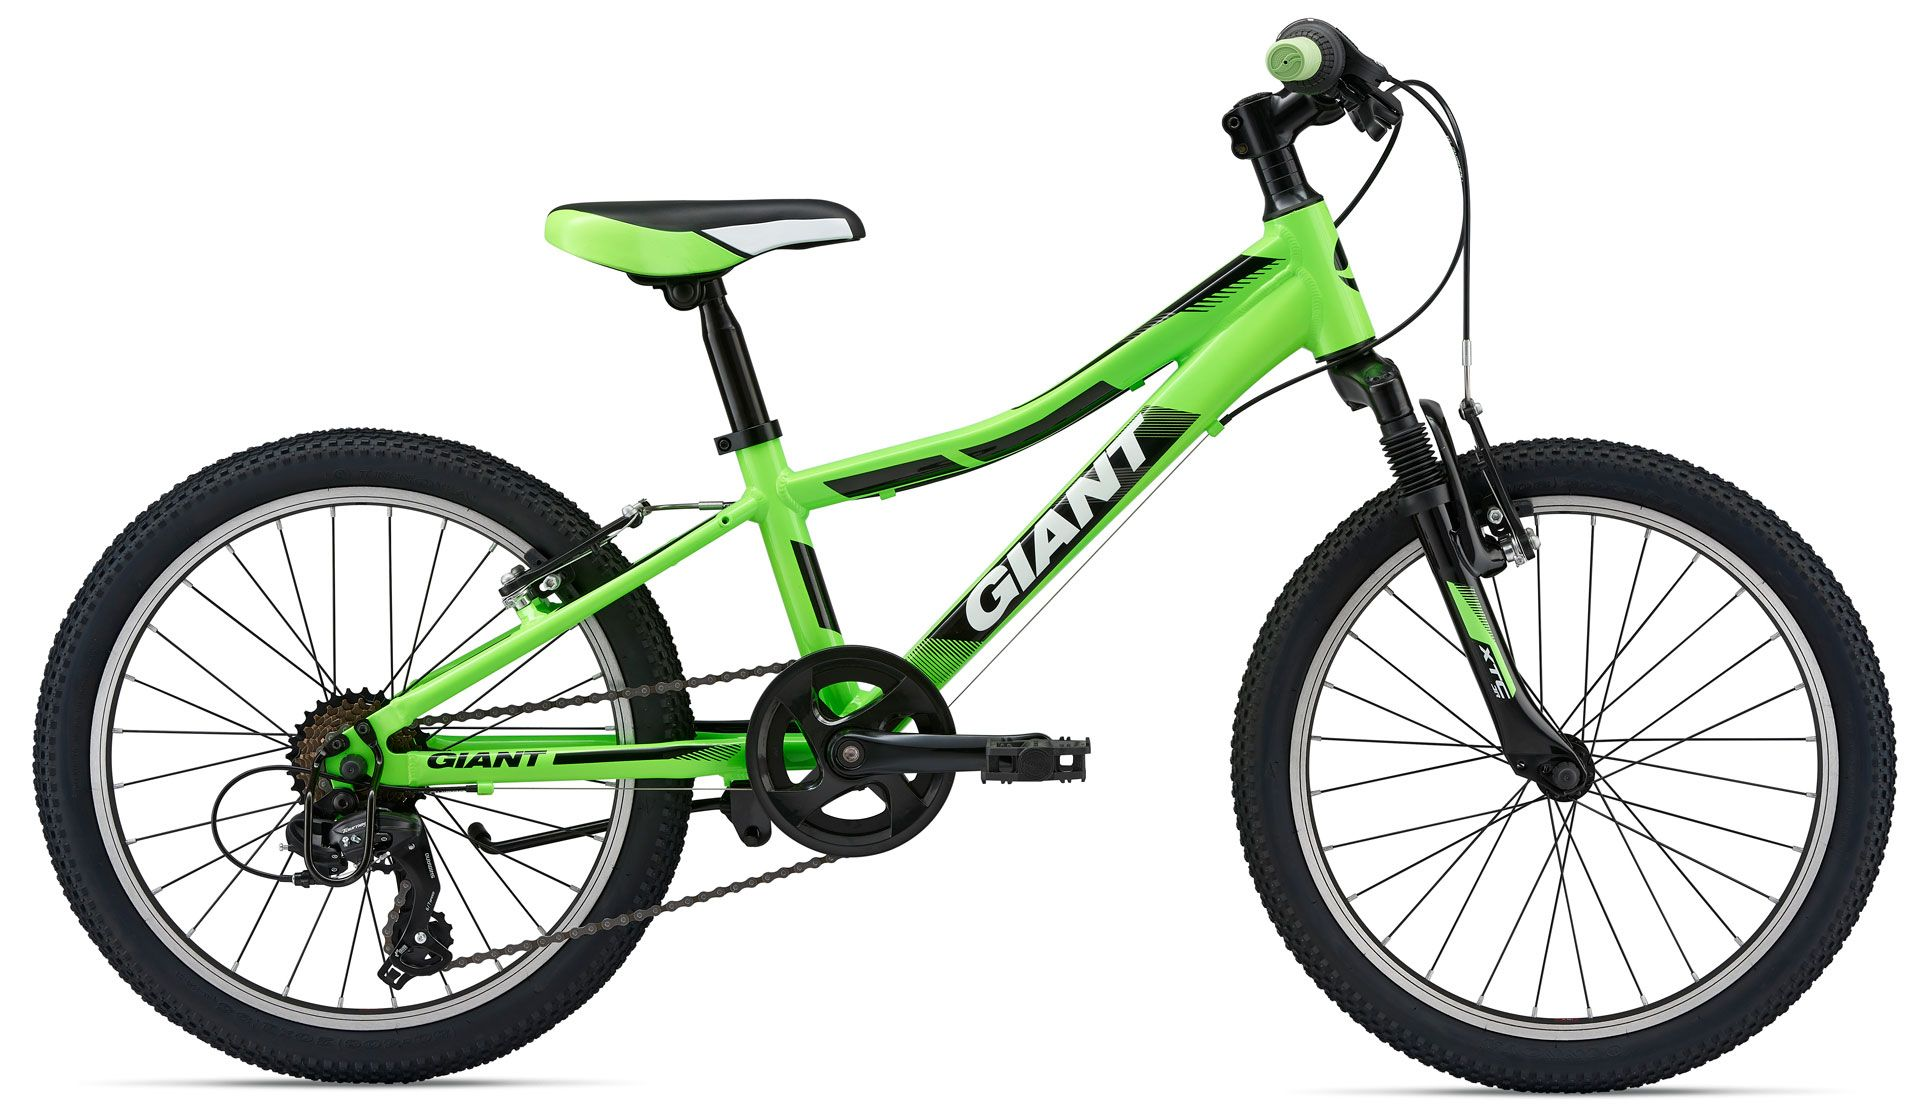 Велосипед Giant XtC Jr 20 2018 велосипед giant xtc advanced 27 5 2 2014